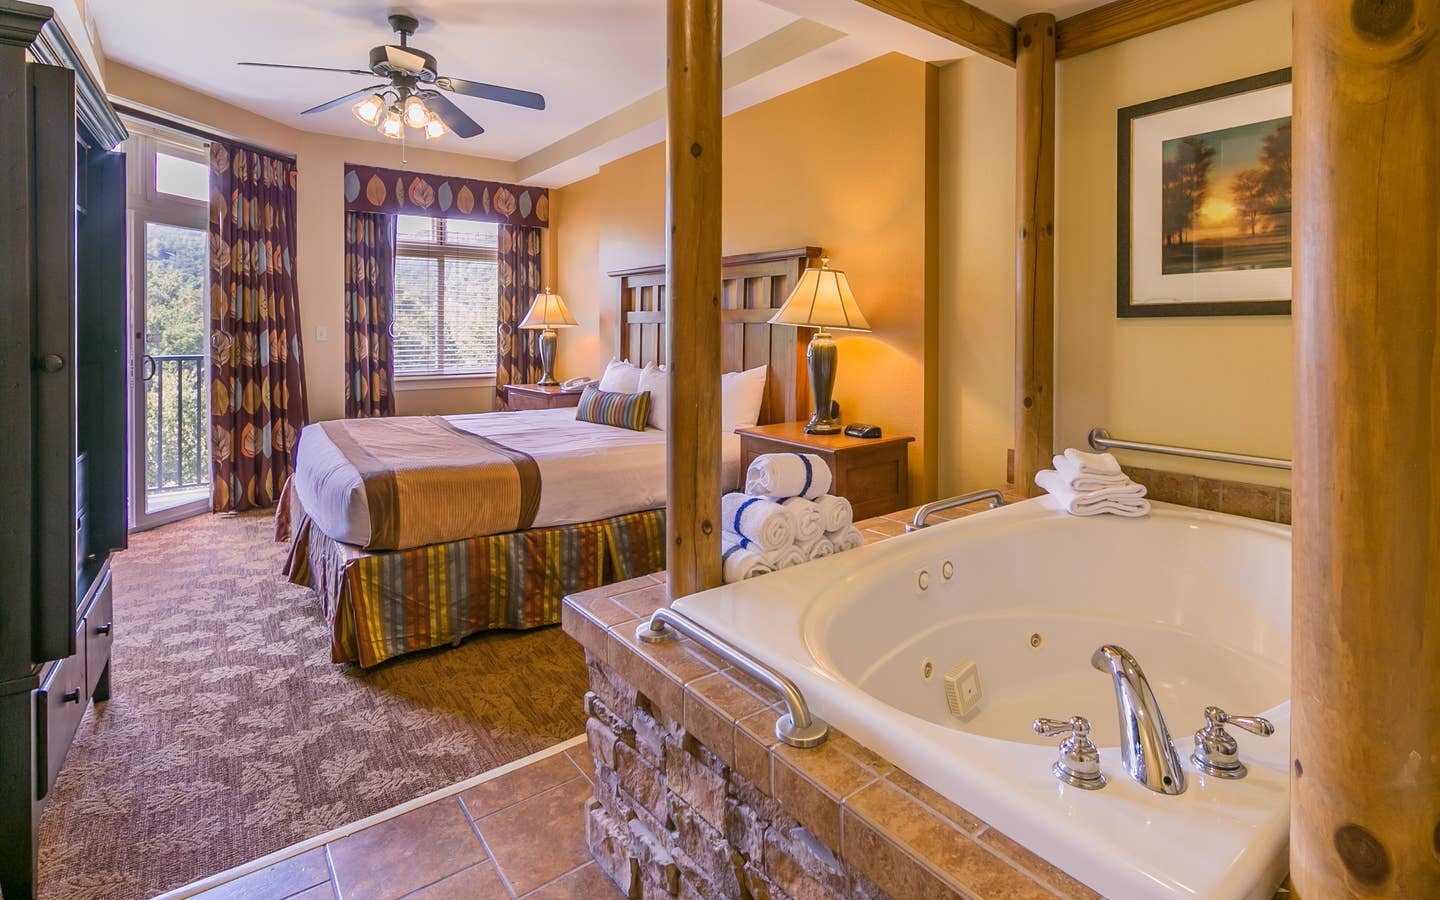 Bedroom with a bed and jacuzzi tub at Smoky Mountain Resort in Gatlinburg, Tennessee.